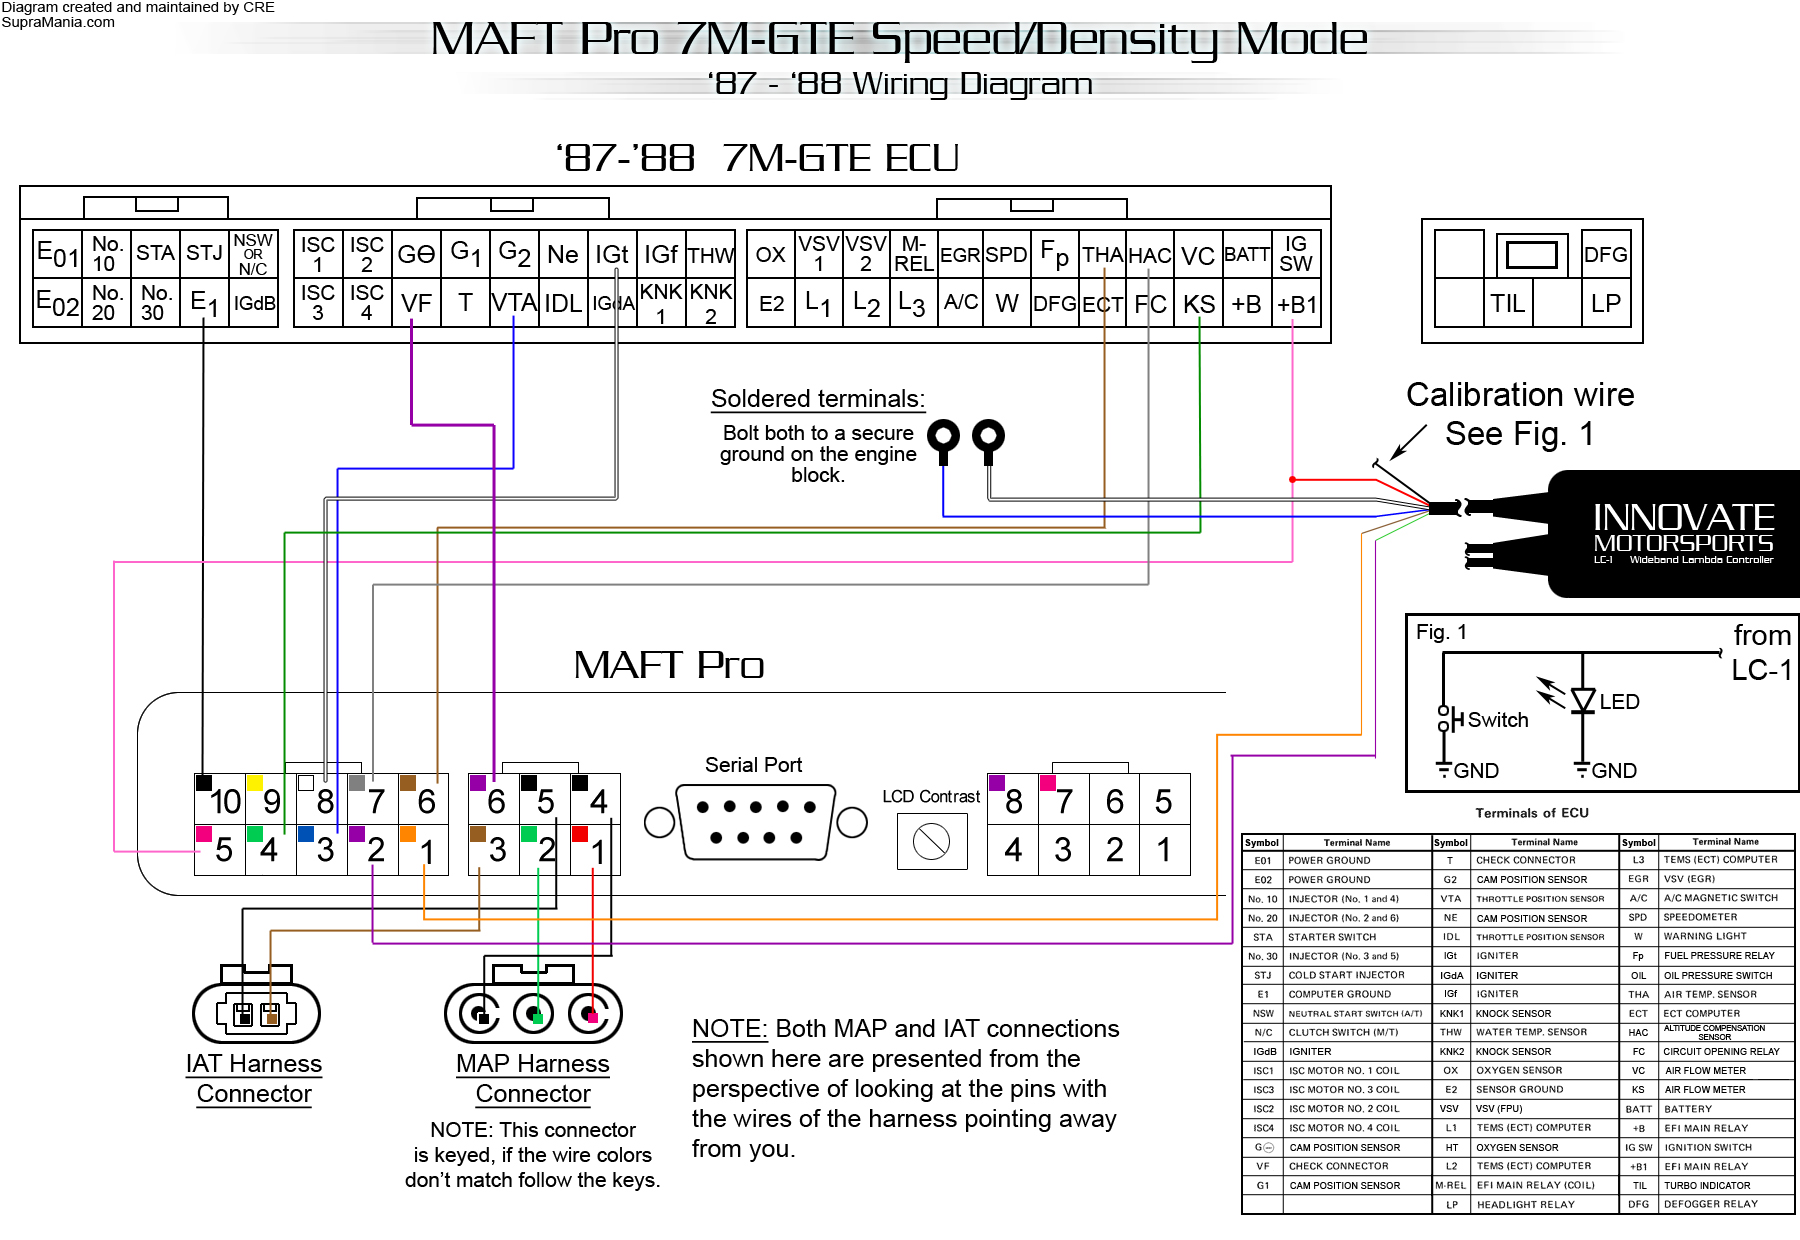 MAFT Pro 7M GTE SD 87 88 maft pro 7m gte sd 87 88 jpg 7mgte wiring diagram at alyssarenee.co